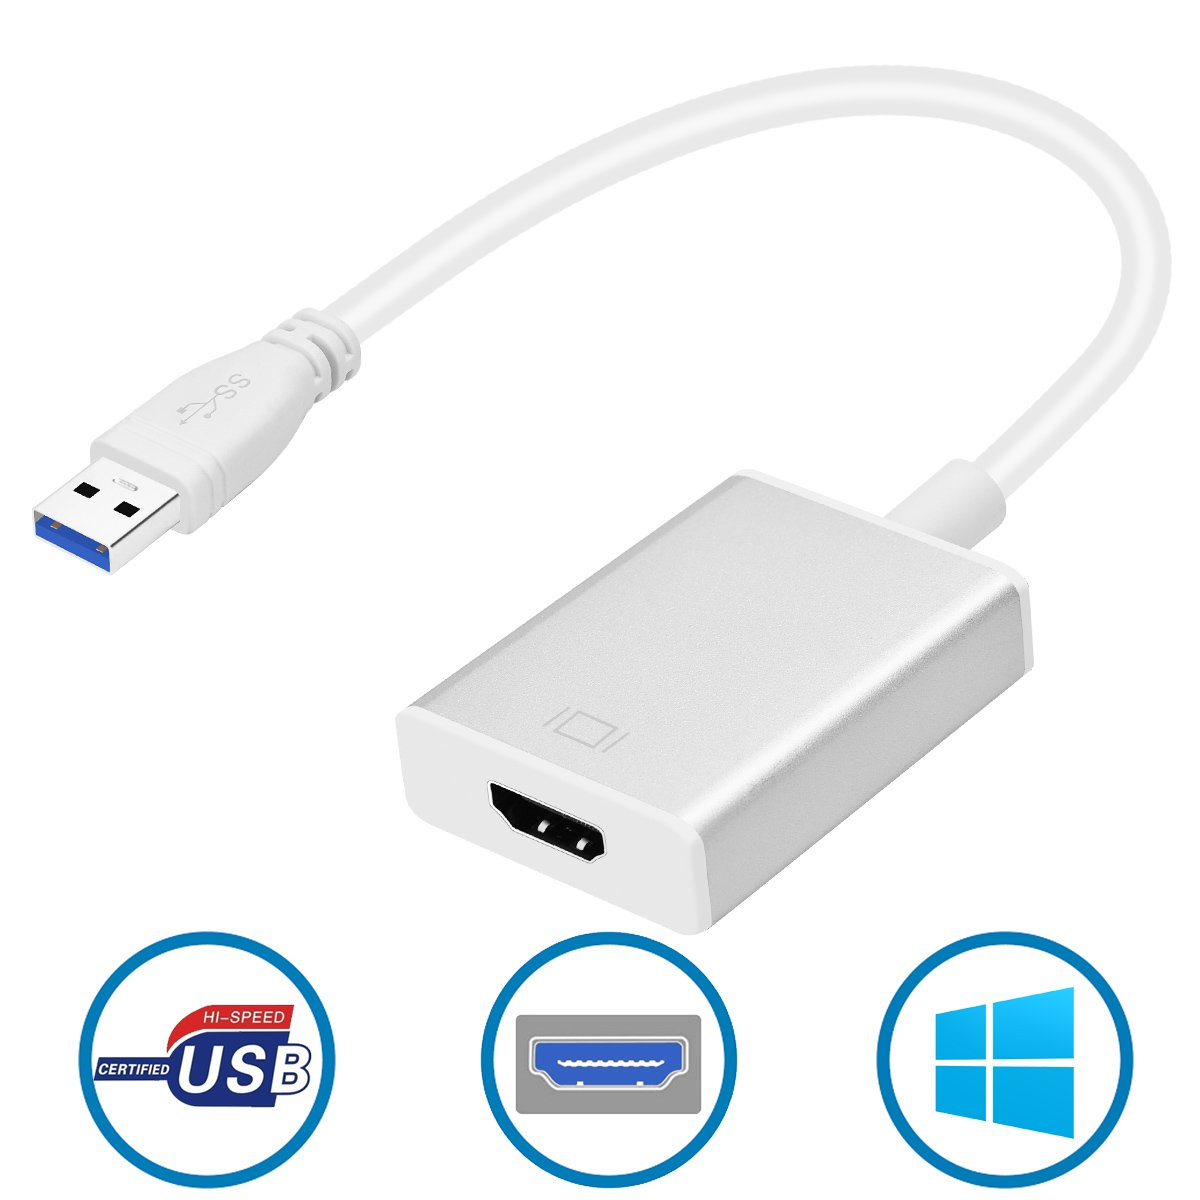 USB to HDMI Adapter, Inclaror USB 3.0 Converter to HDMI 1080P Video Multi Monitor Converter with Audio Output for Laptop HDTV TV PC with Windows XP / 7 / 8 /10 ( No Mac / Vista, Aluminum Silver ) by Inclaror